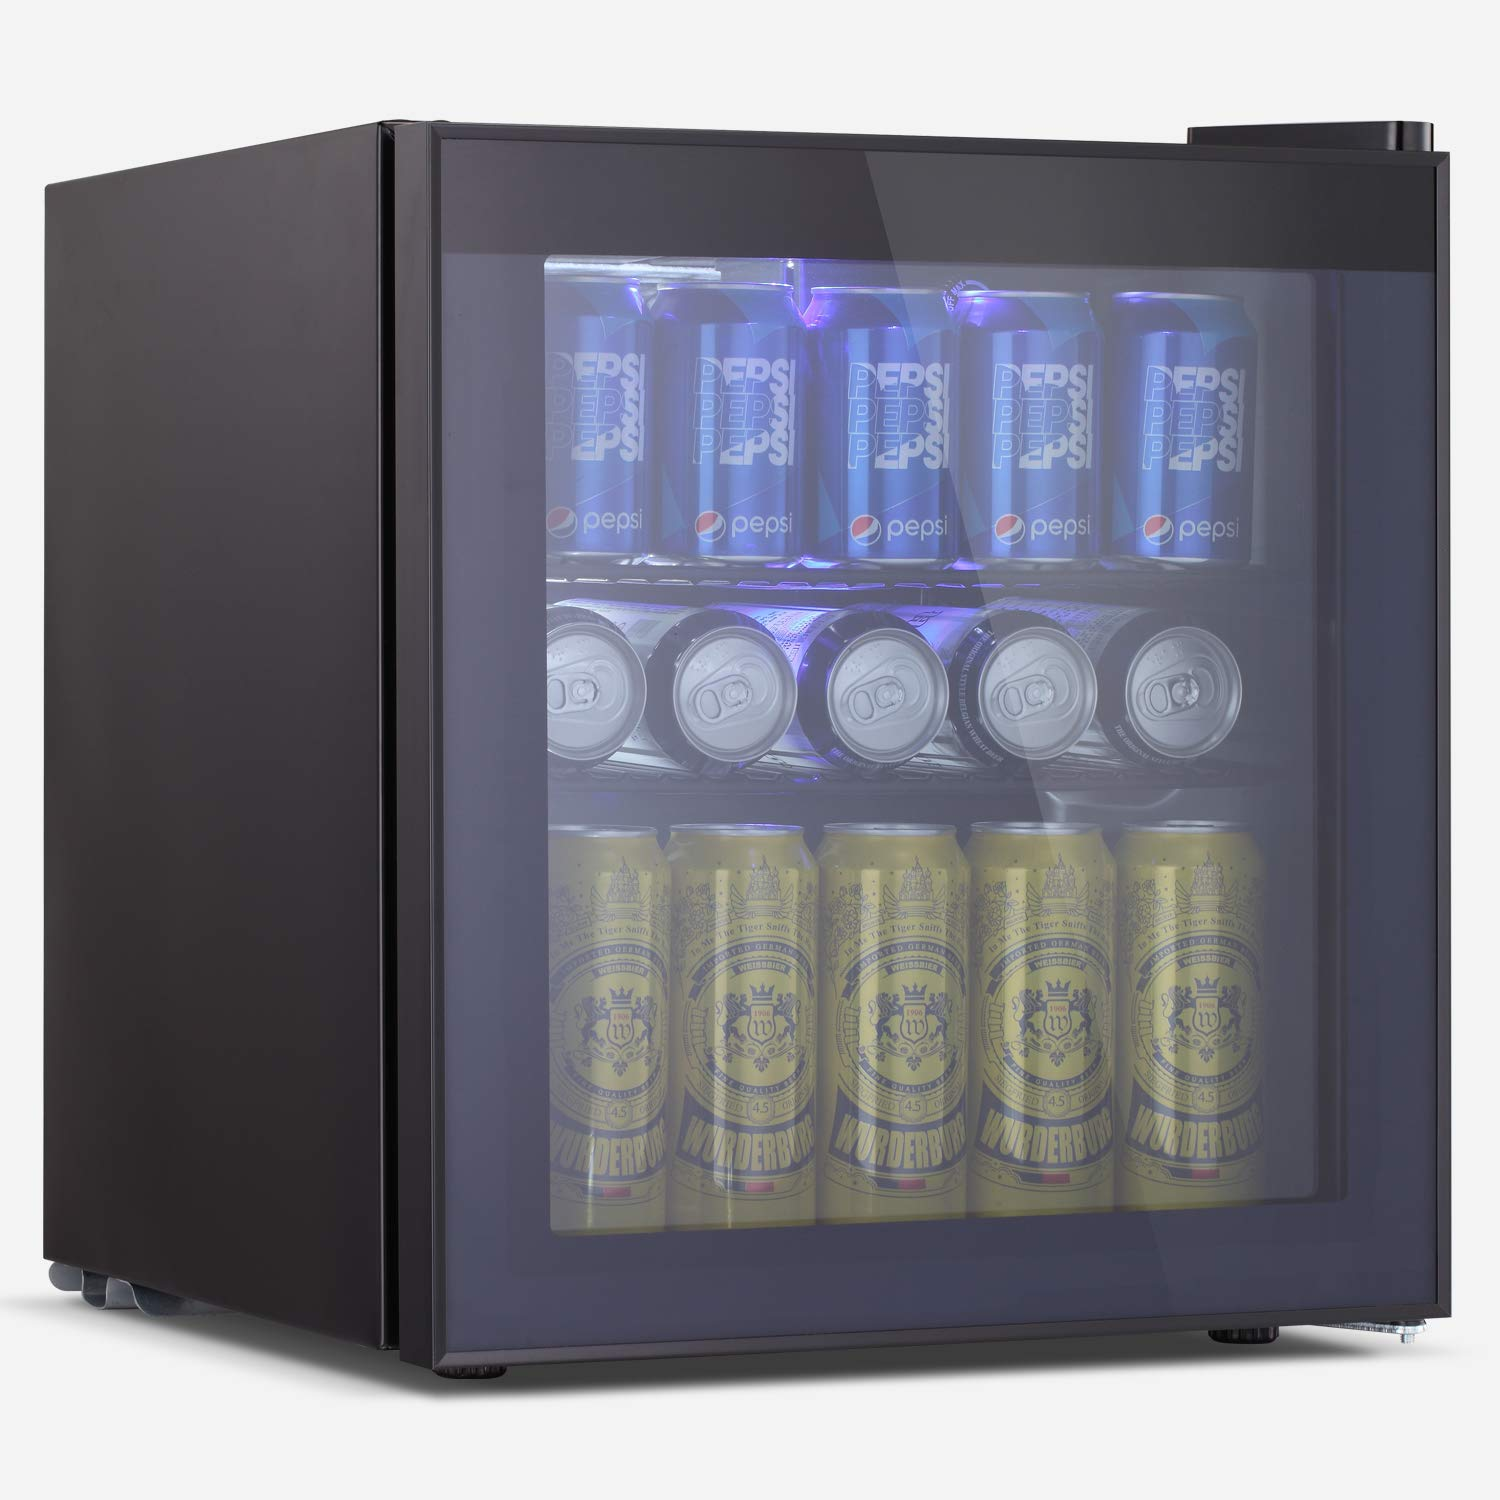 BOSSIN Beverage Refrigerator and Cooler, 60 Can Capacity with Smoky Gray Glass Door for Soda Beer or Wine,Compressor Touch Panel Digital Temperature Display for Home, Office, Bar(1.6 cu.ft)